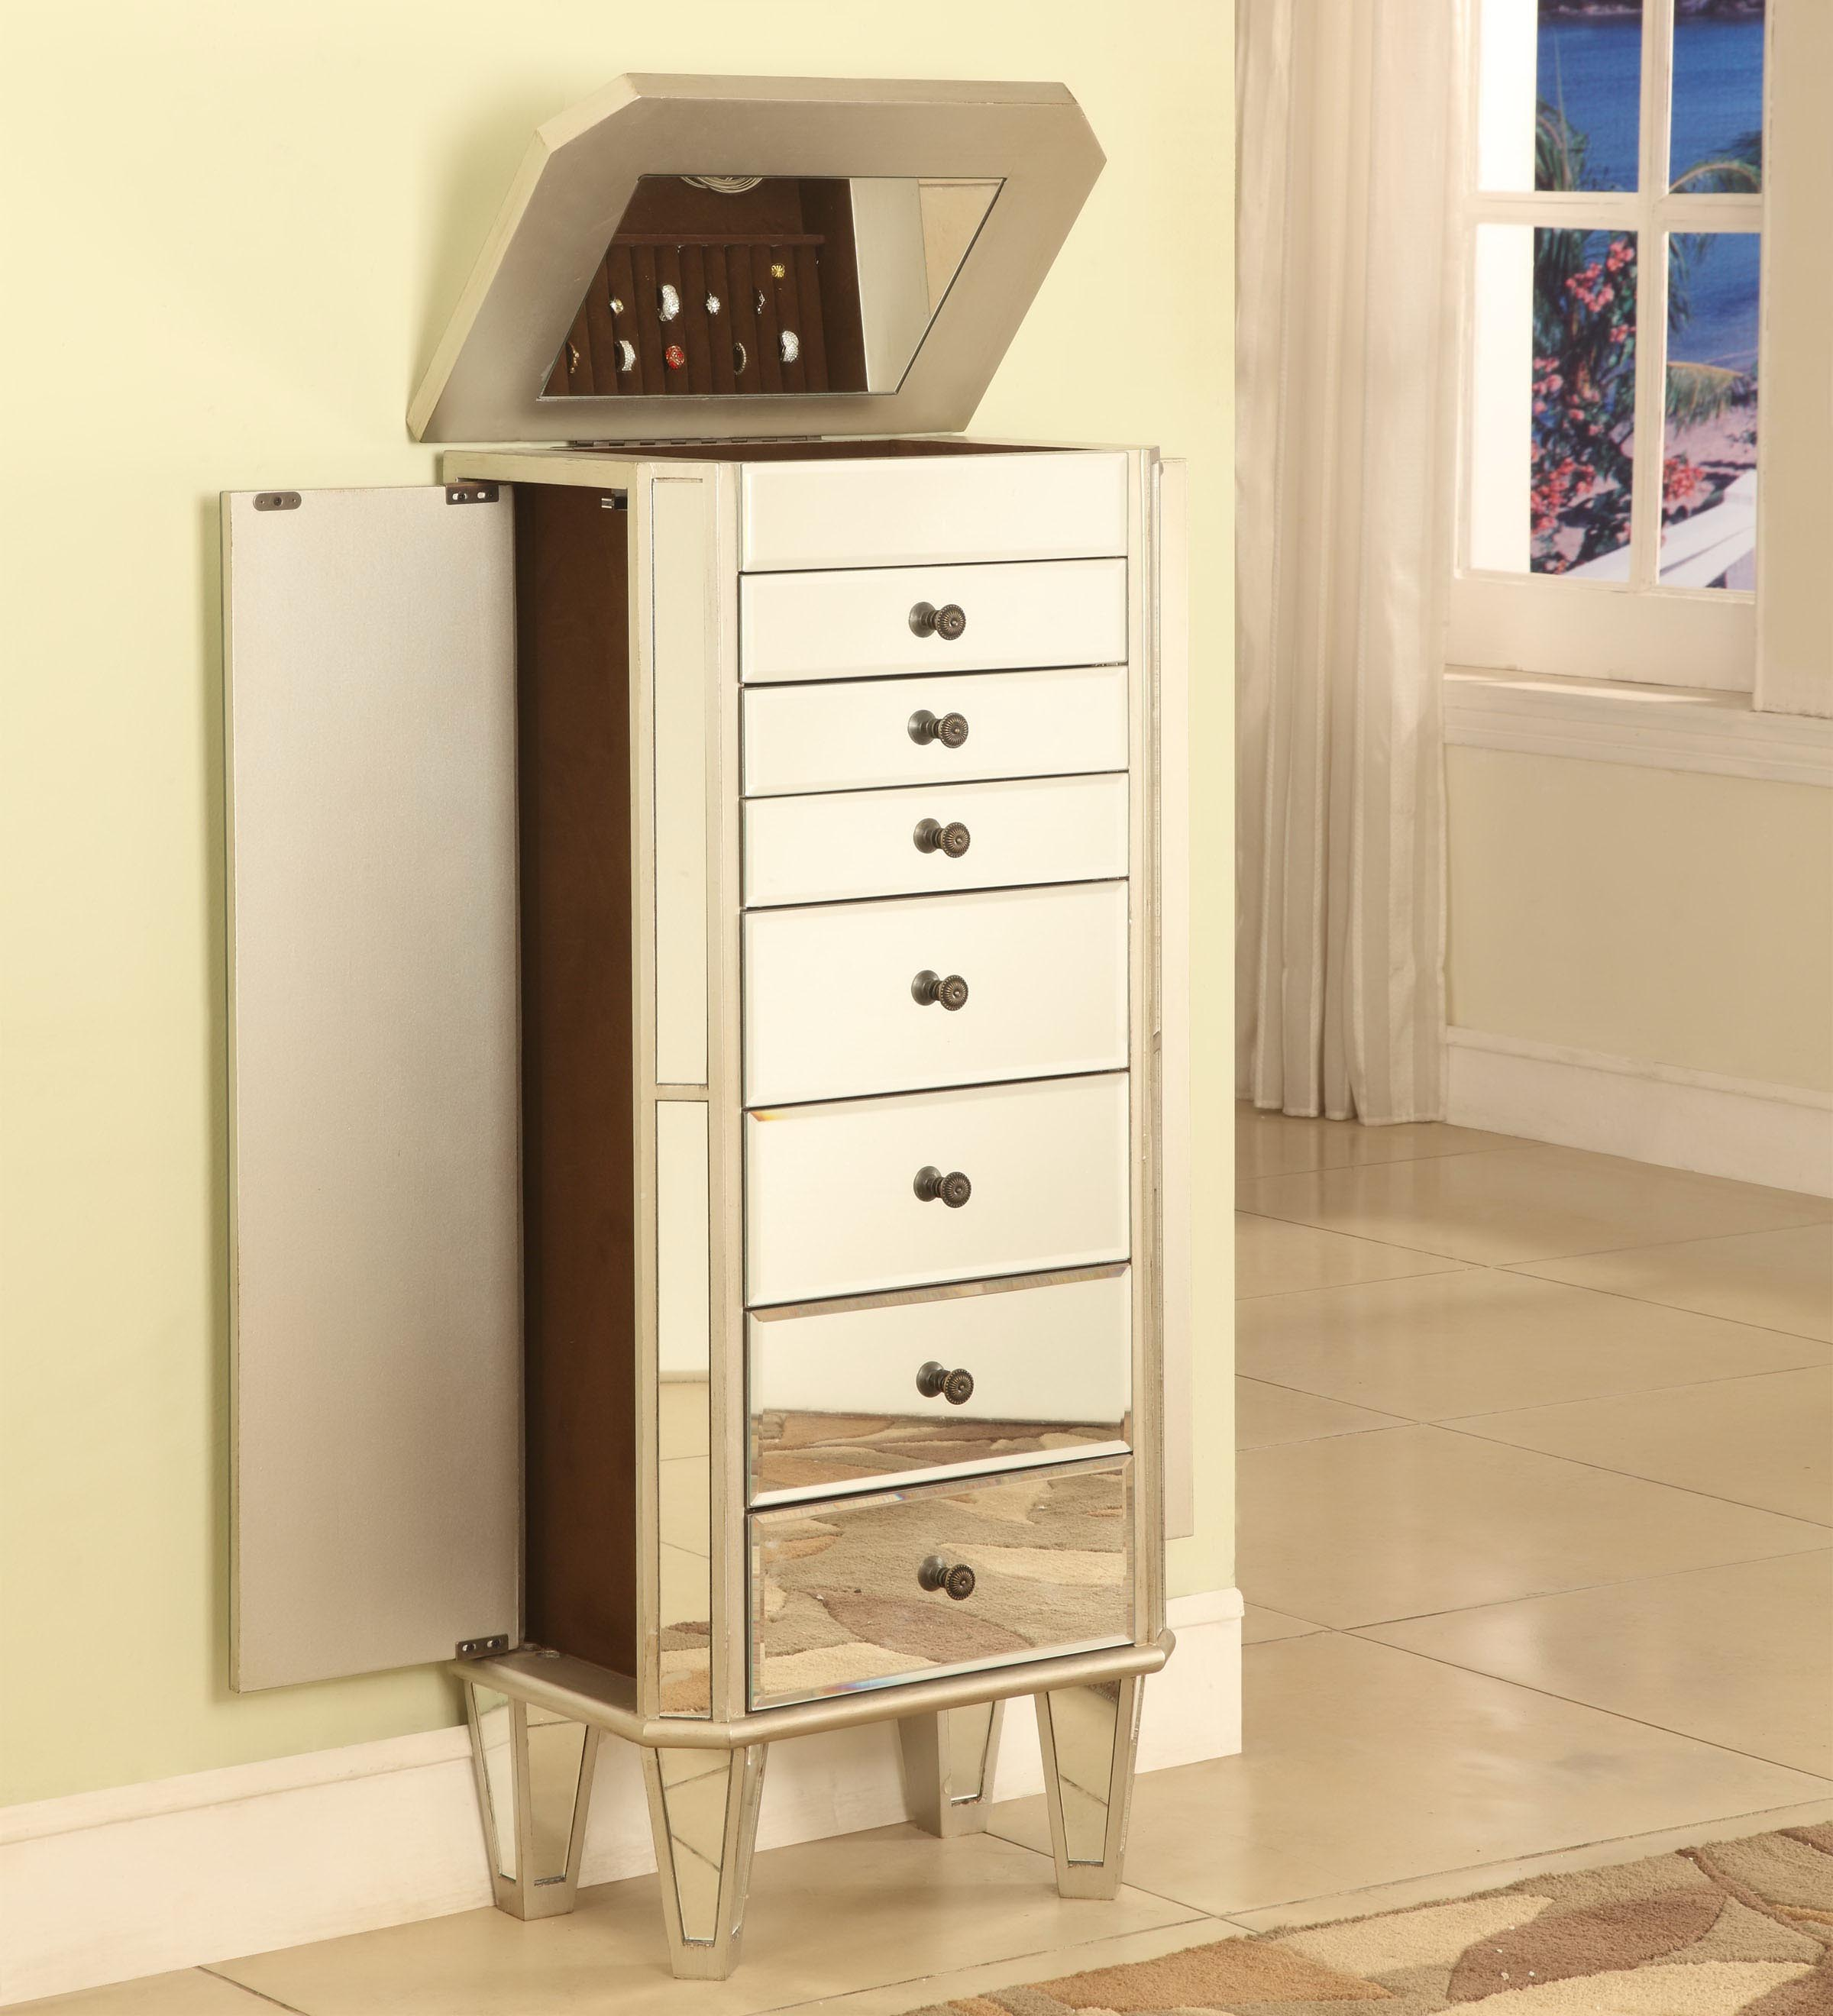 Armoire Furniture | Armoire Walmart | Furniture Wardrobe Armoire